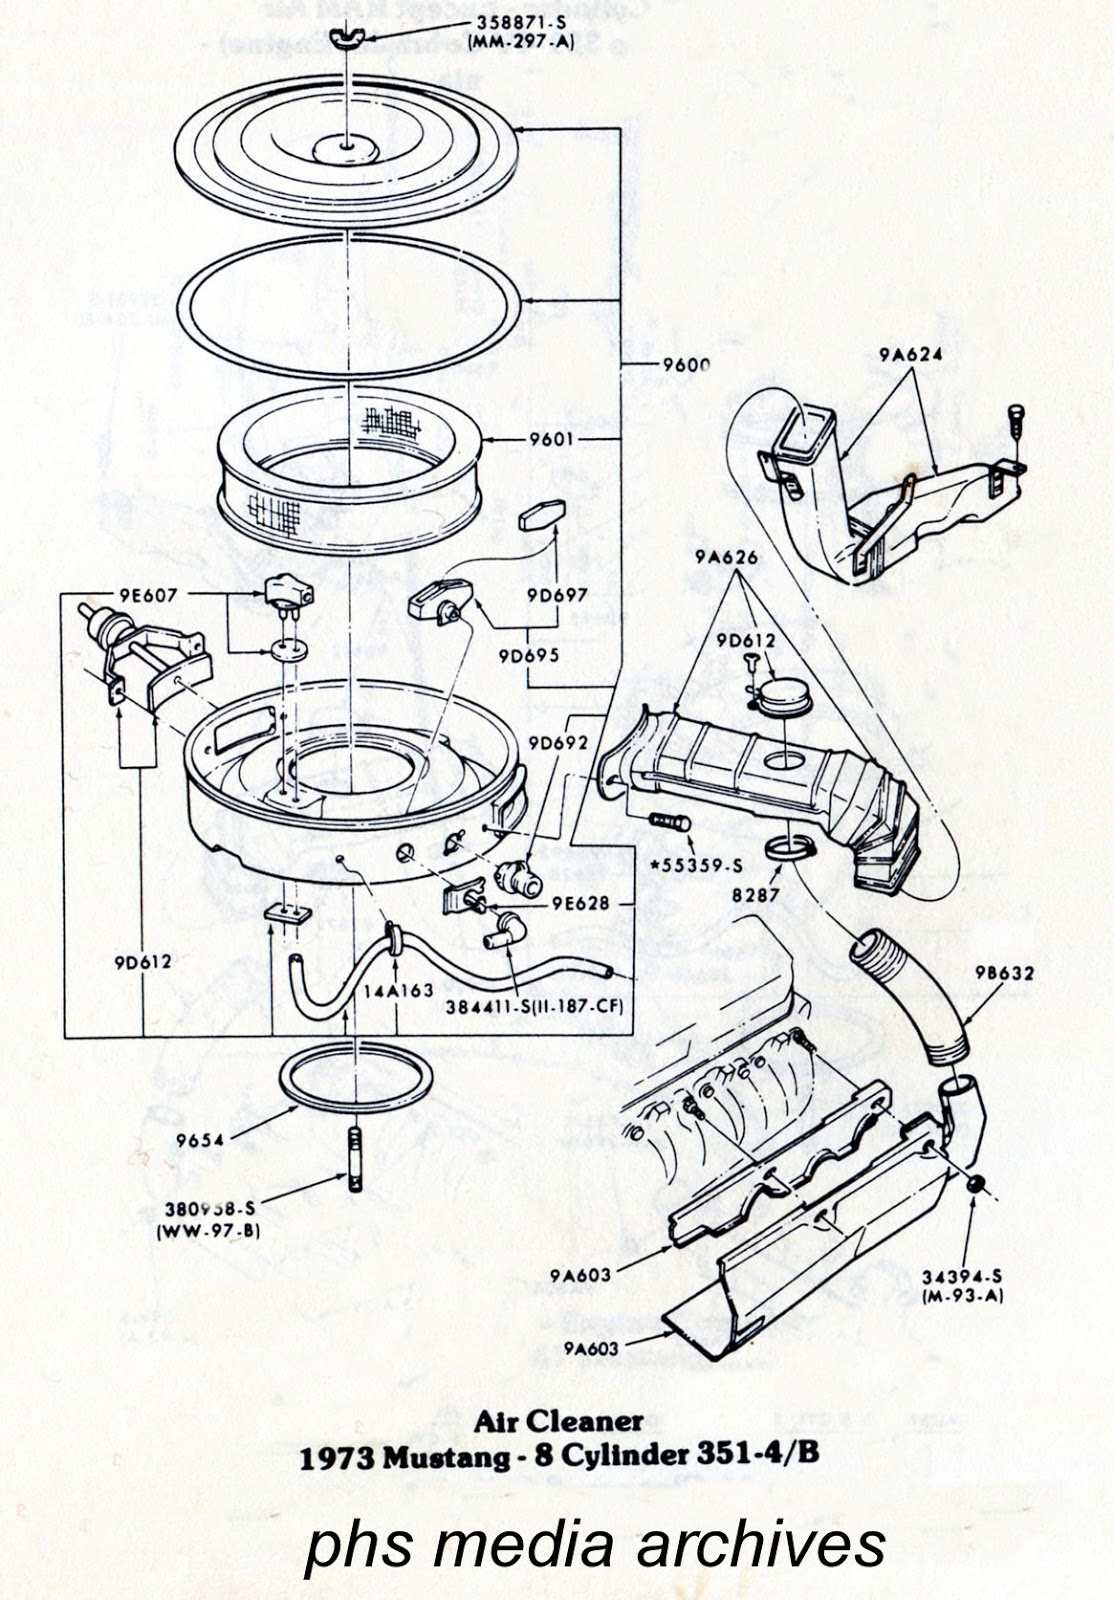 Tech Series Ford Mustang Air Cleaner Id Guide 1971 1973 Boss 429 Engine Diagram By Was Down To Just 4 Engines In The Line 351 Ho Dropped